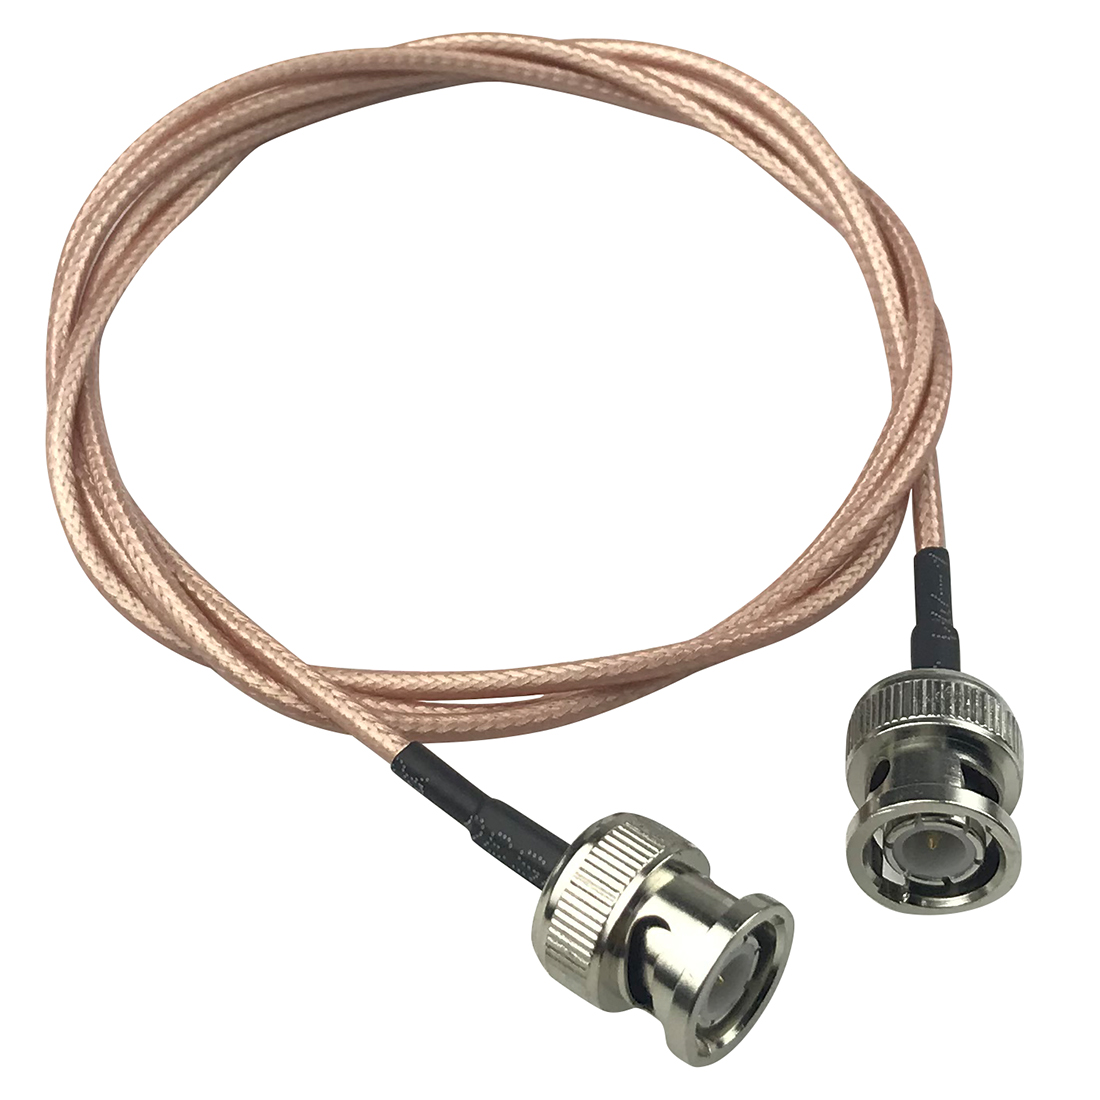 Image 3 - RG316 SDI Cable 50 Ohm BNC Male to BNC Male Video Coaxial Coax Cable for SDI Camera Security CCTV Camera DVR System/BMCC 1M/3FT-in Transmission & Cables from Security & Protection